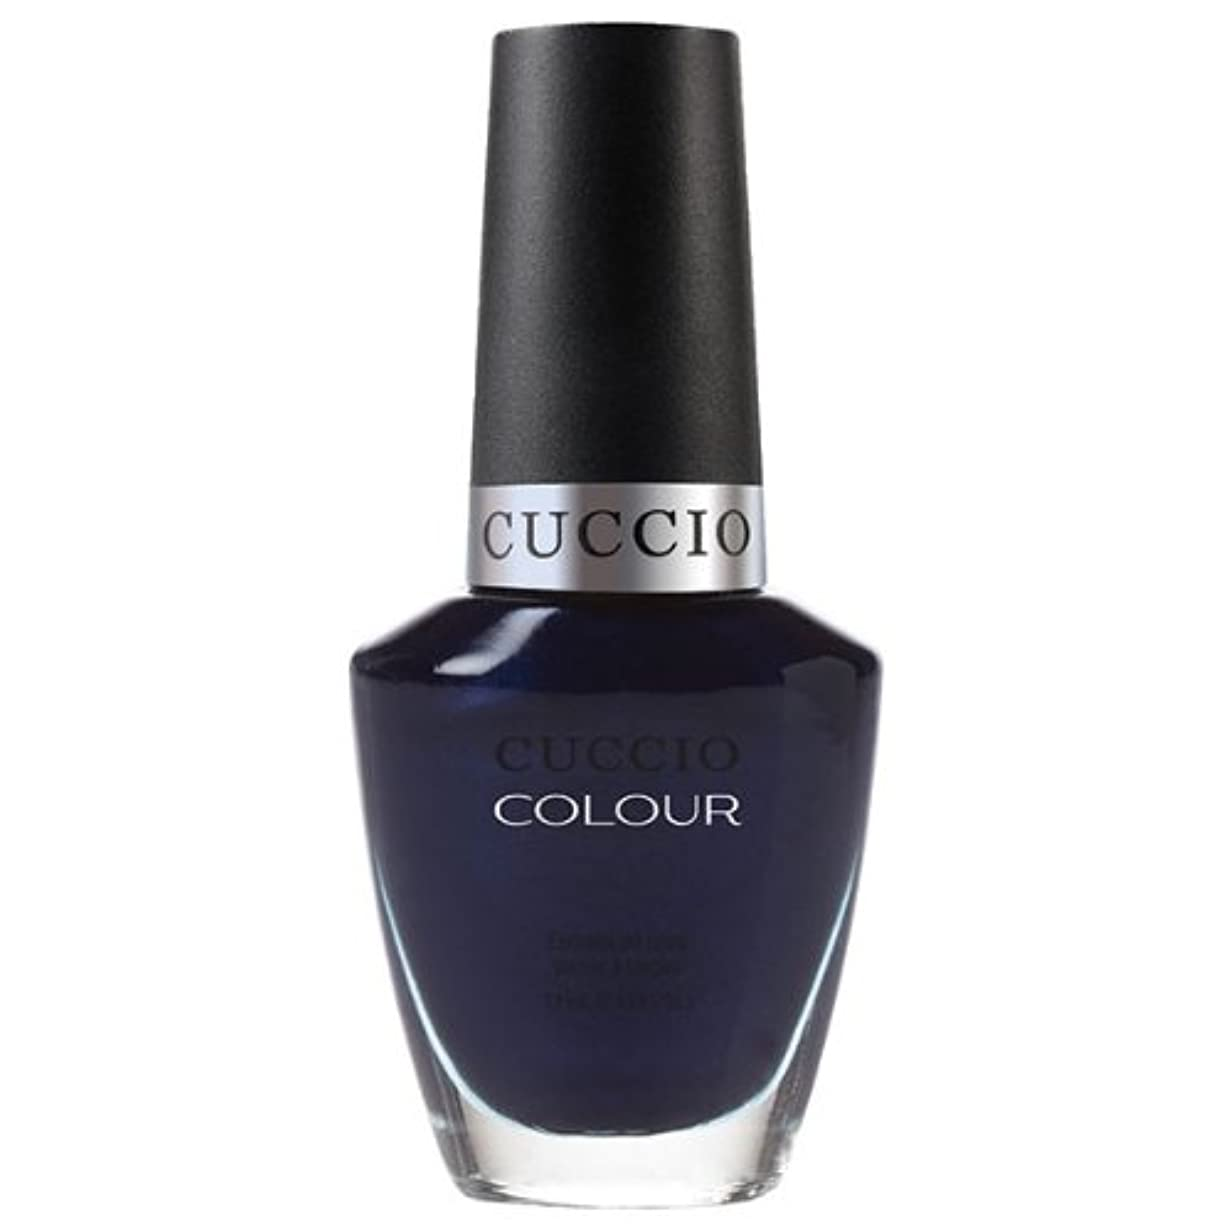 モーターシンプトンラインCuccio Colour Gloss Lacquer - On the Nile Blue - 0.43oz / 13ml